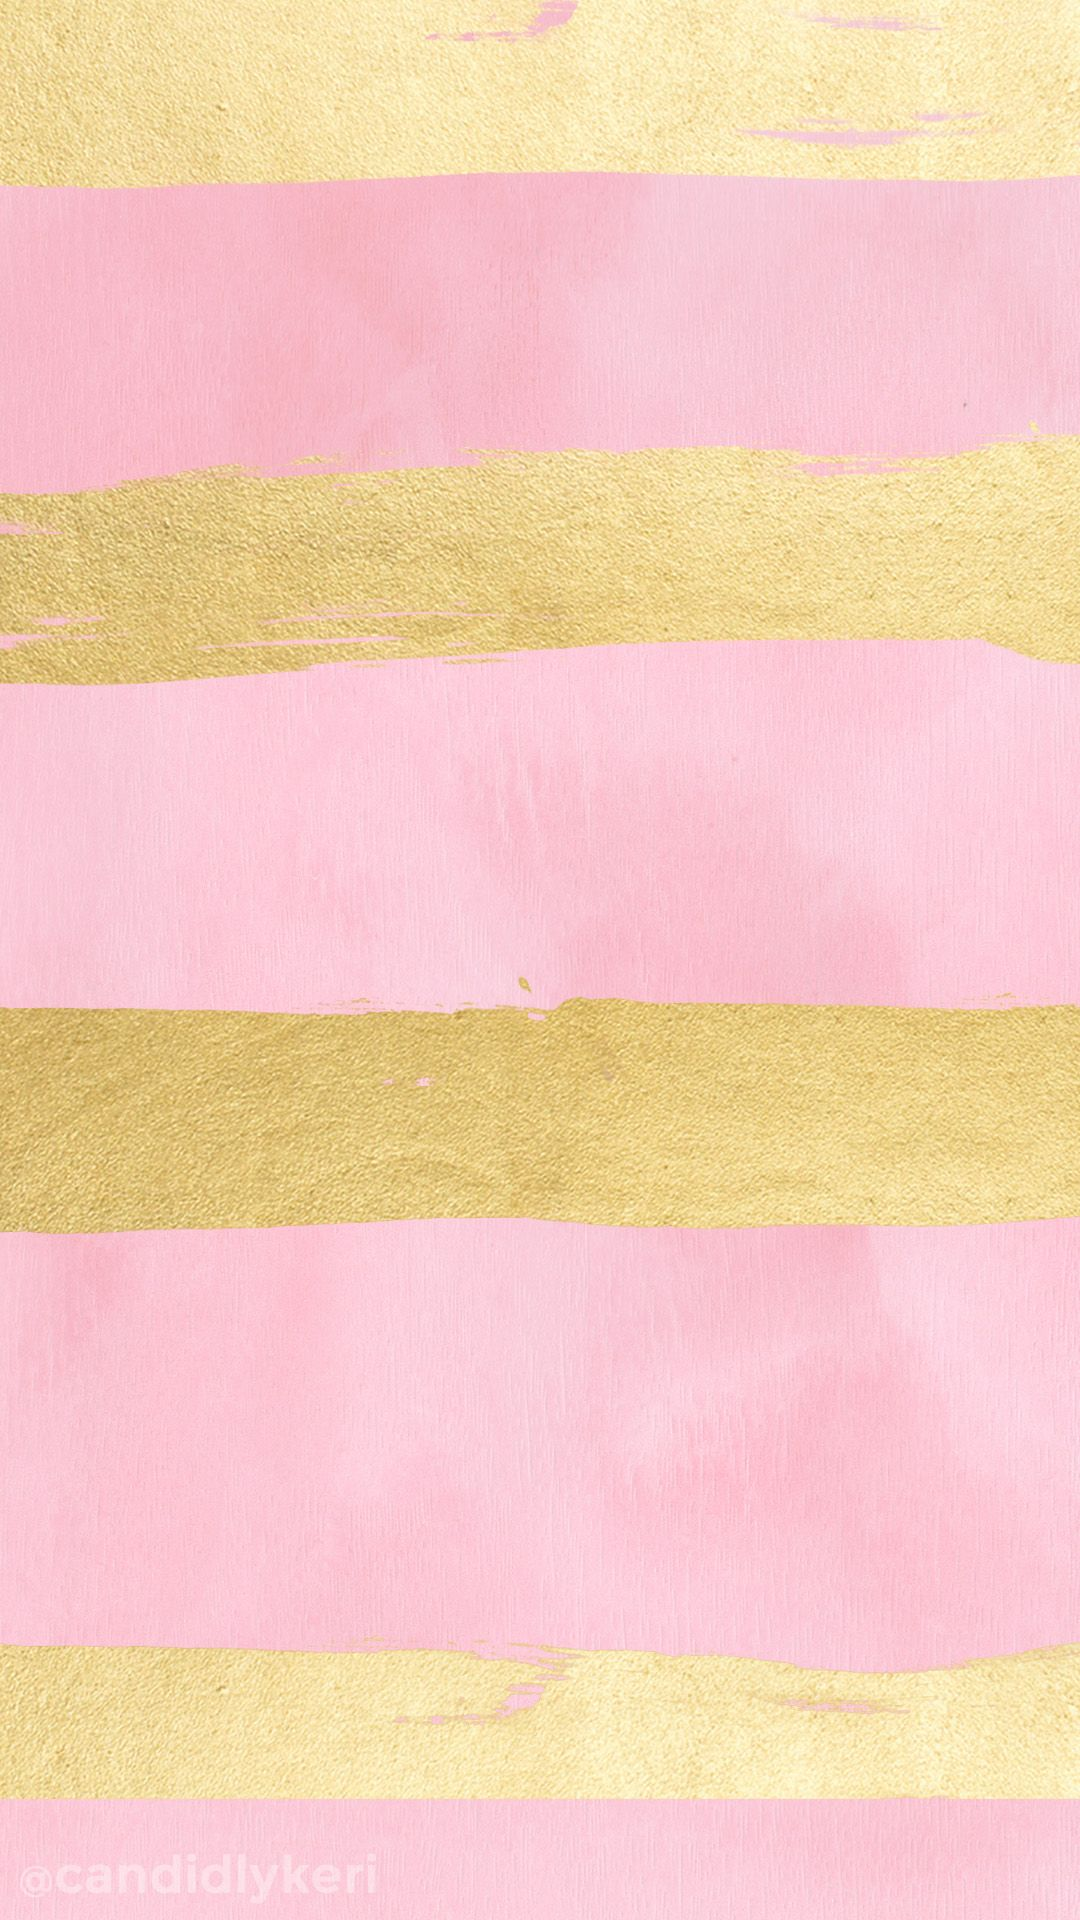 Pink and gold foil pattern background wallpaper you can ...